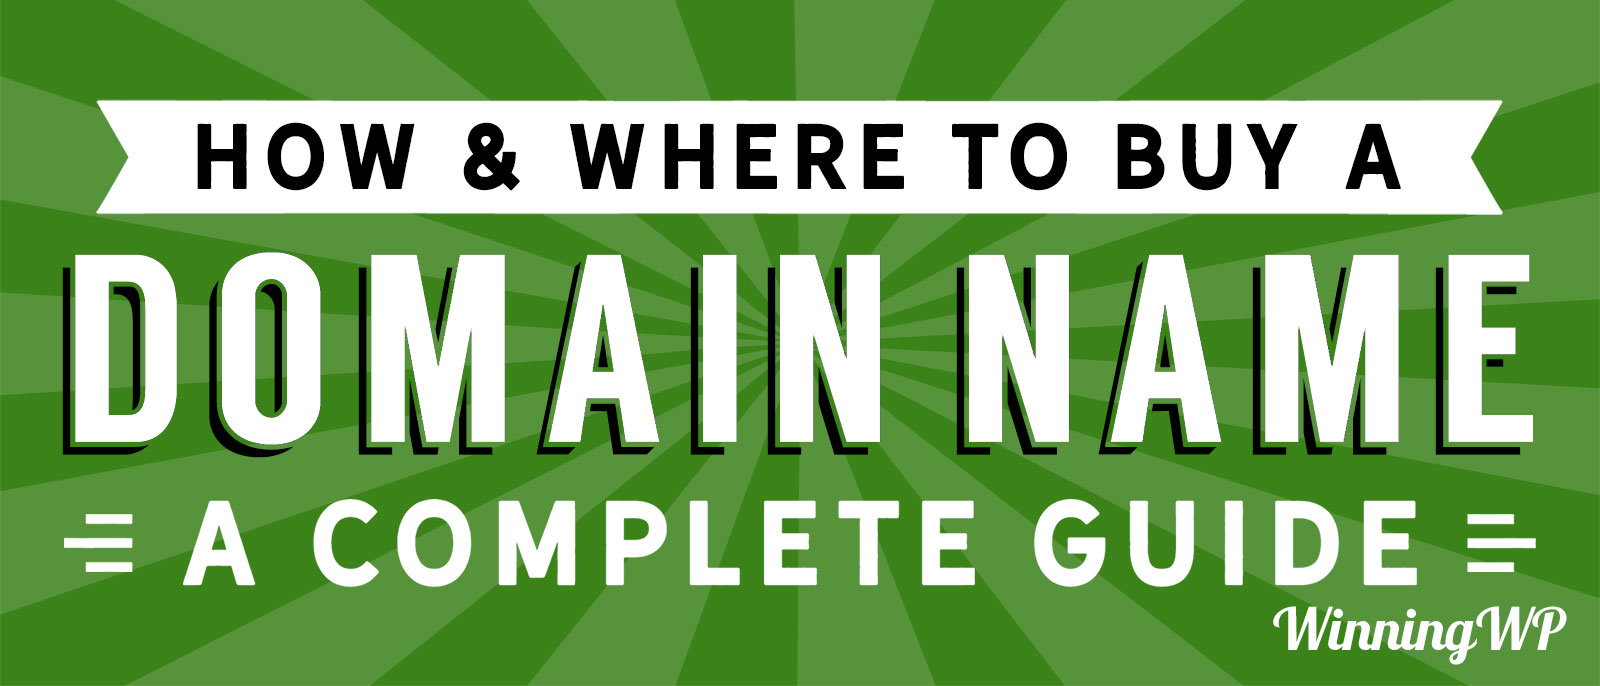 how-where-to-buy-domain-name-a-complete-guide